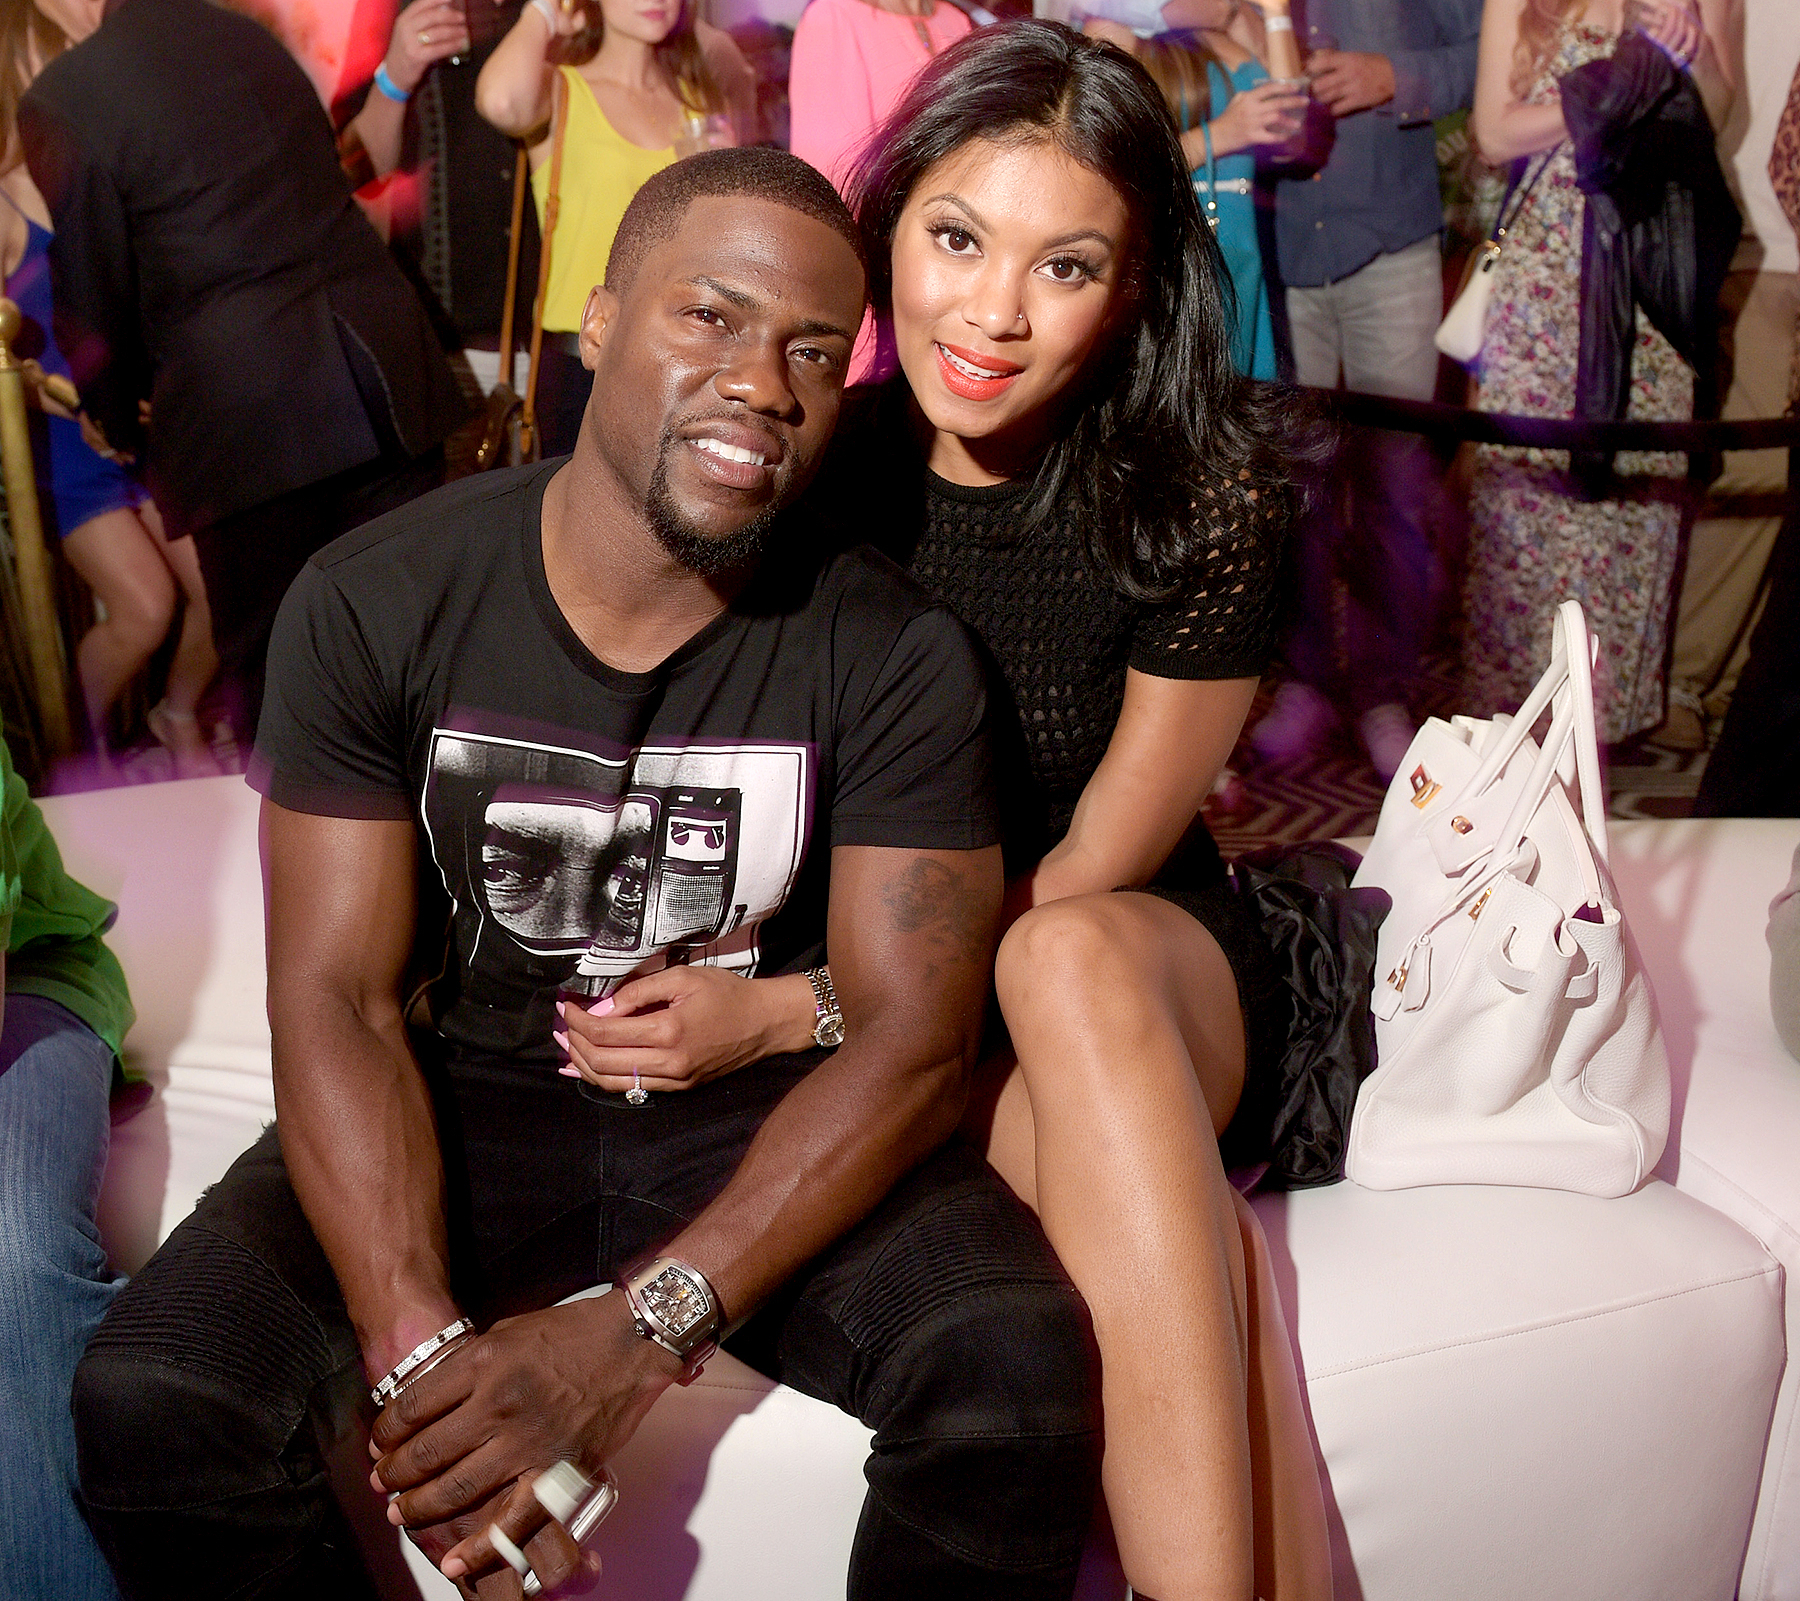 Kevin Hart and Eniko Parrish attend the 11th Annual Desert Smash Hosted By Will Ferrell Benefiting Cancer For College at La Quinta Resort and Club on March 10, 2015 in La Quinta, California.